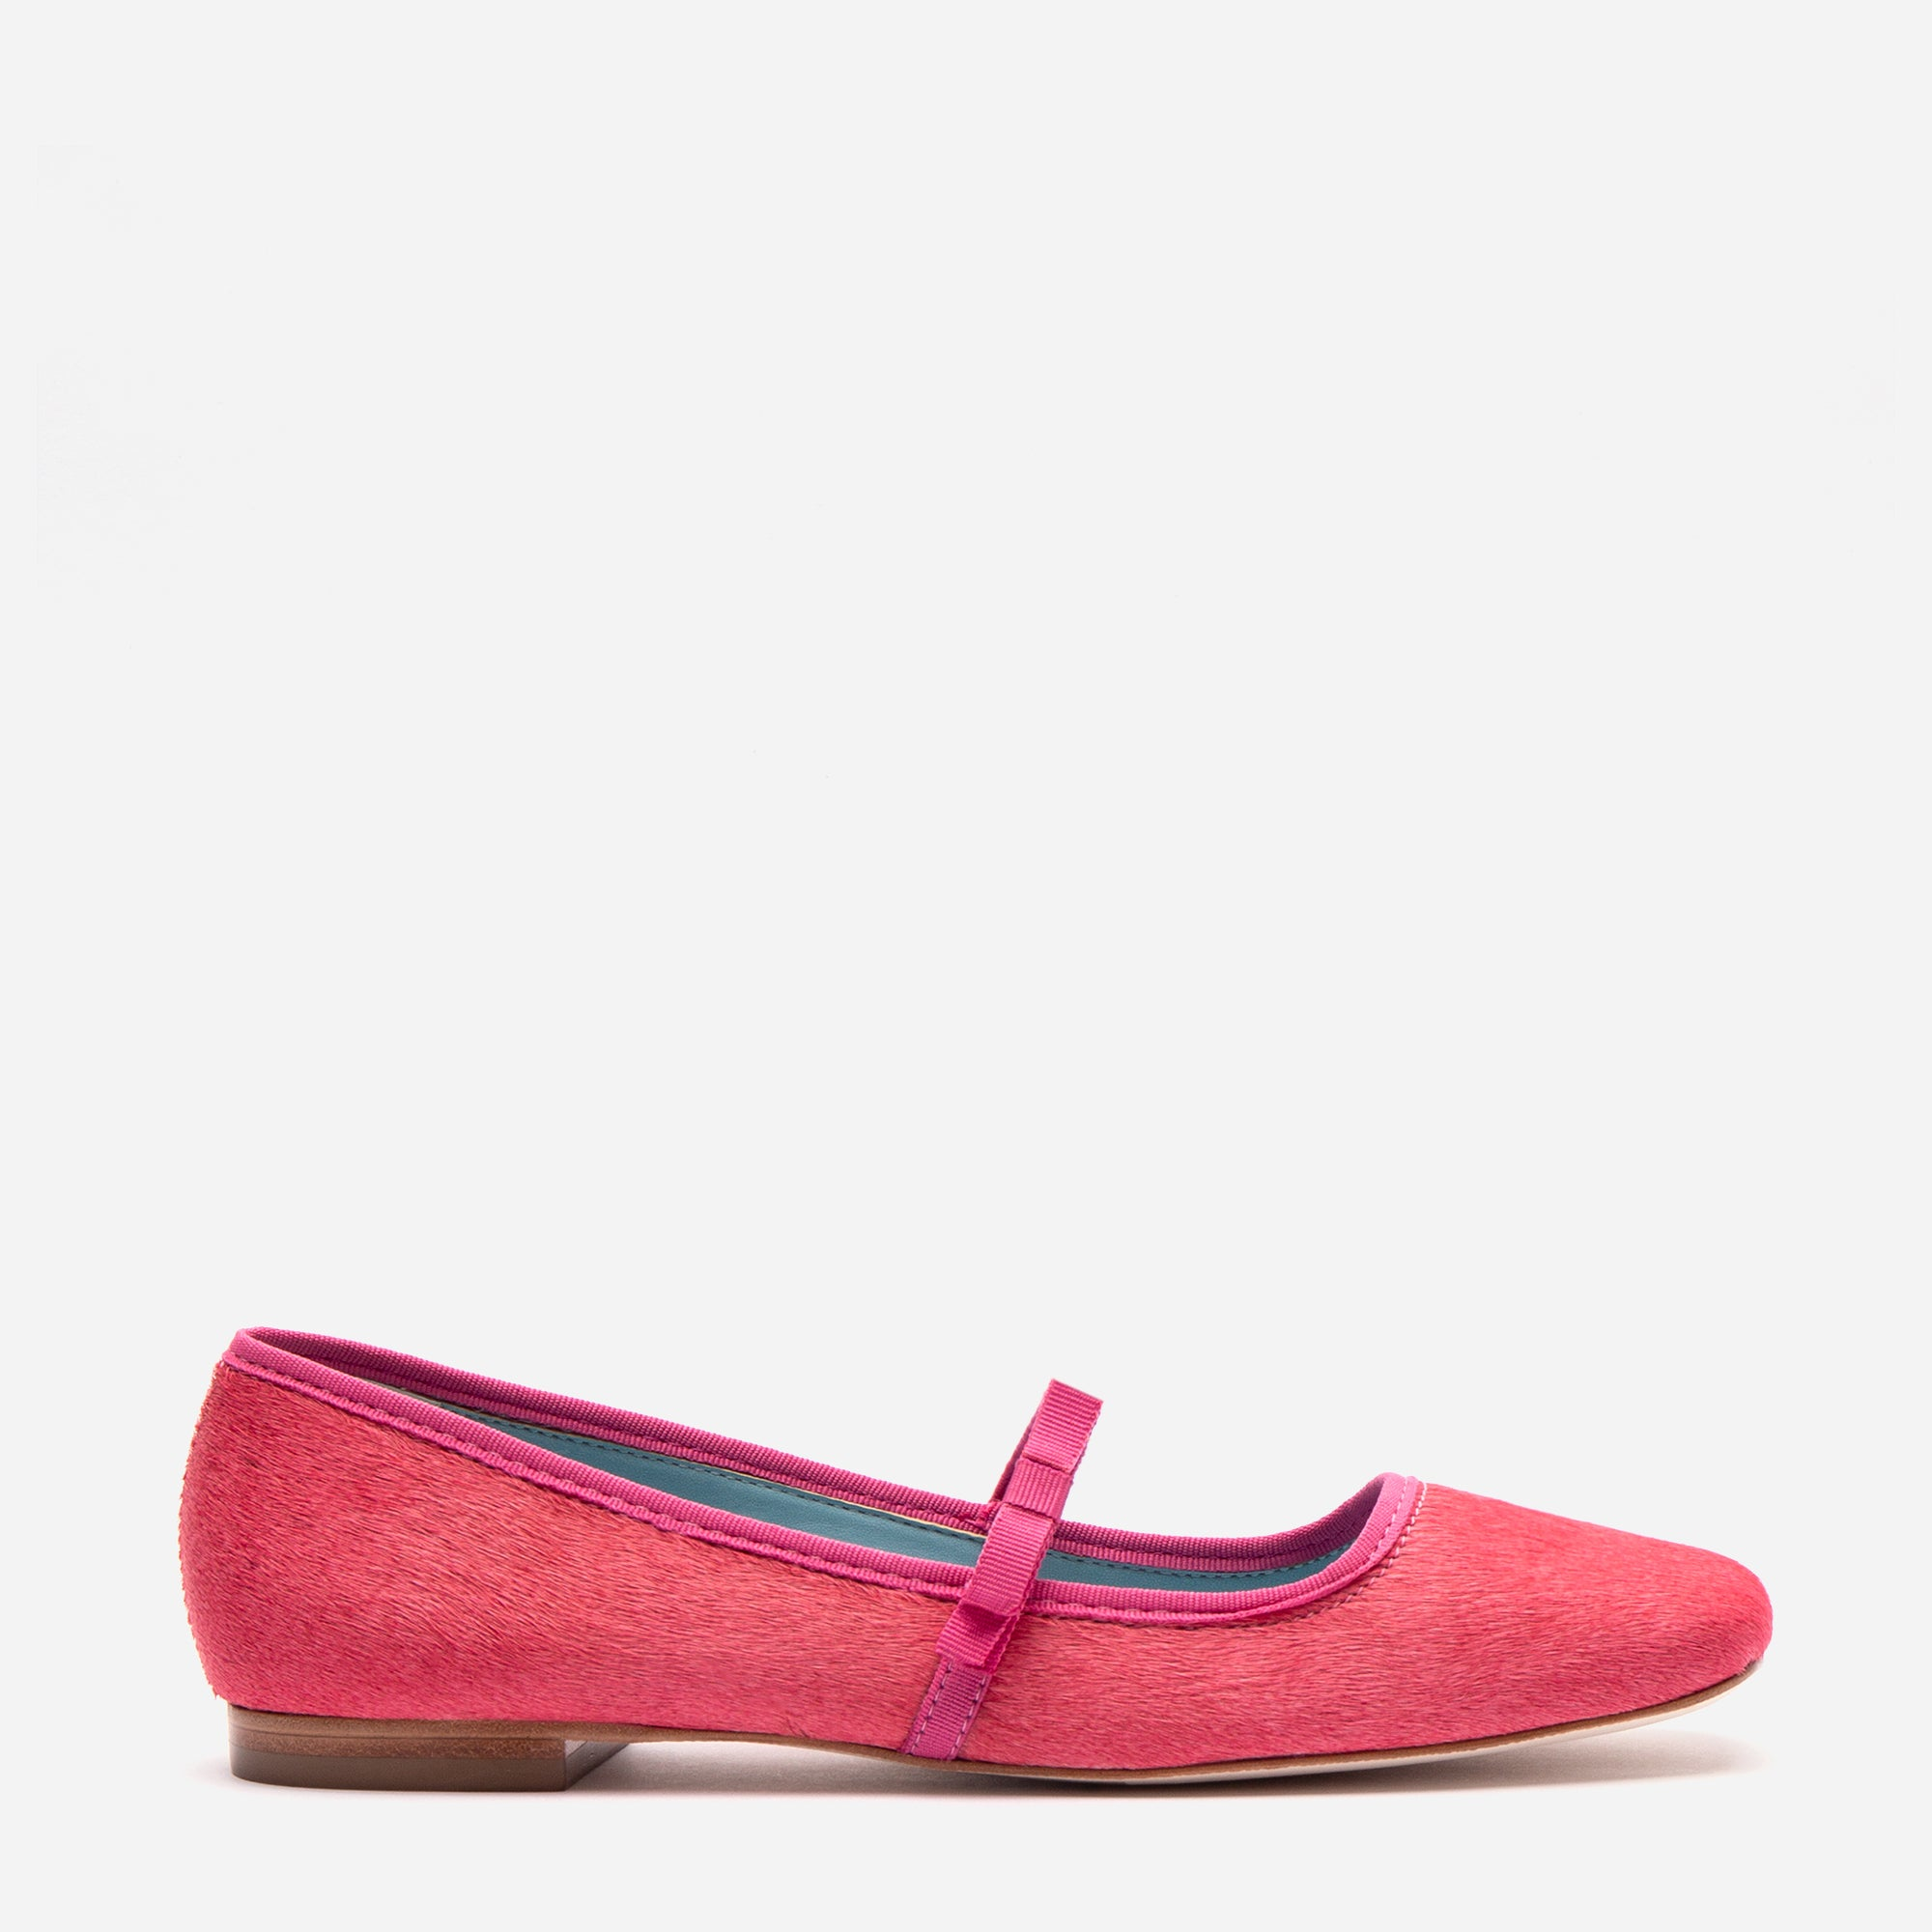 Jude Mary Jane Flat Pink Haircalf - Frances Valentine